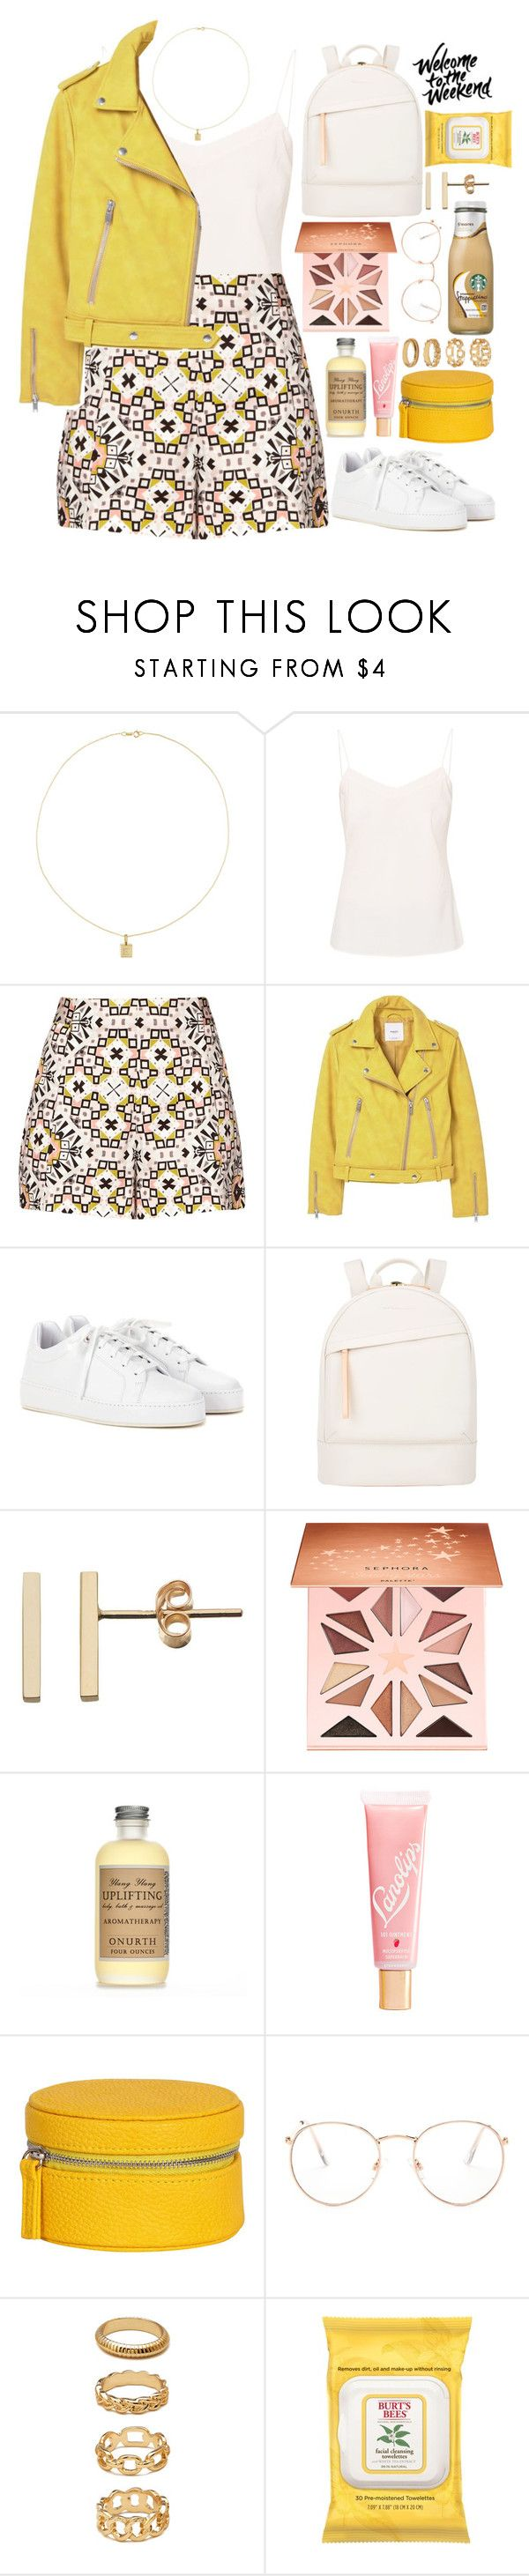 """🌕"" by fashioneex ❤ liked on Polyvore featuring Jennifer Meyer Jewelry, Ted Baker, French Connection, MANGO, Loro Piana, Want Les Essentiels de la Vie, Sephora Collection, Lano, Glance Eyewear and Forever 21"